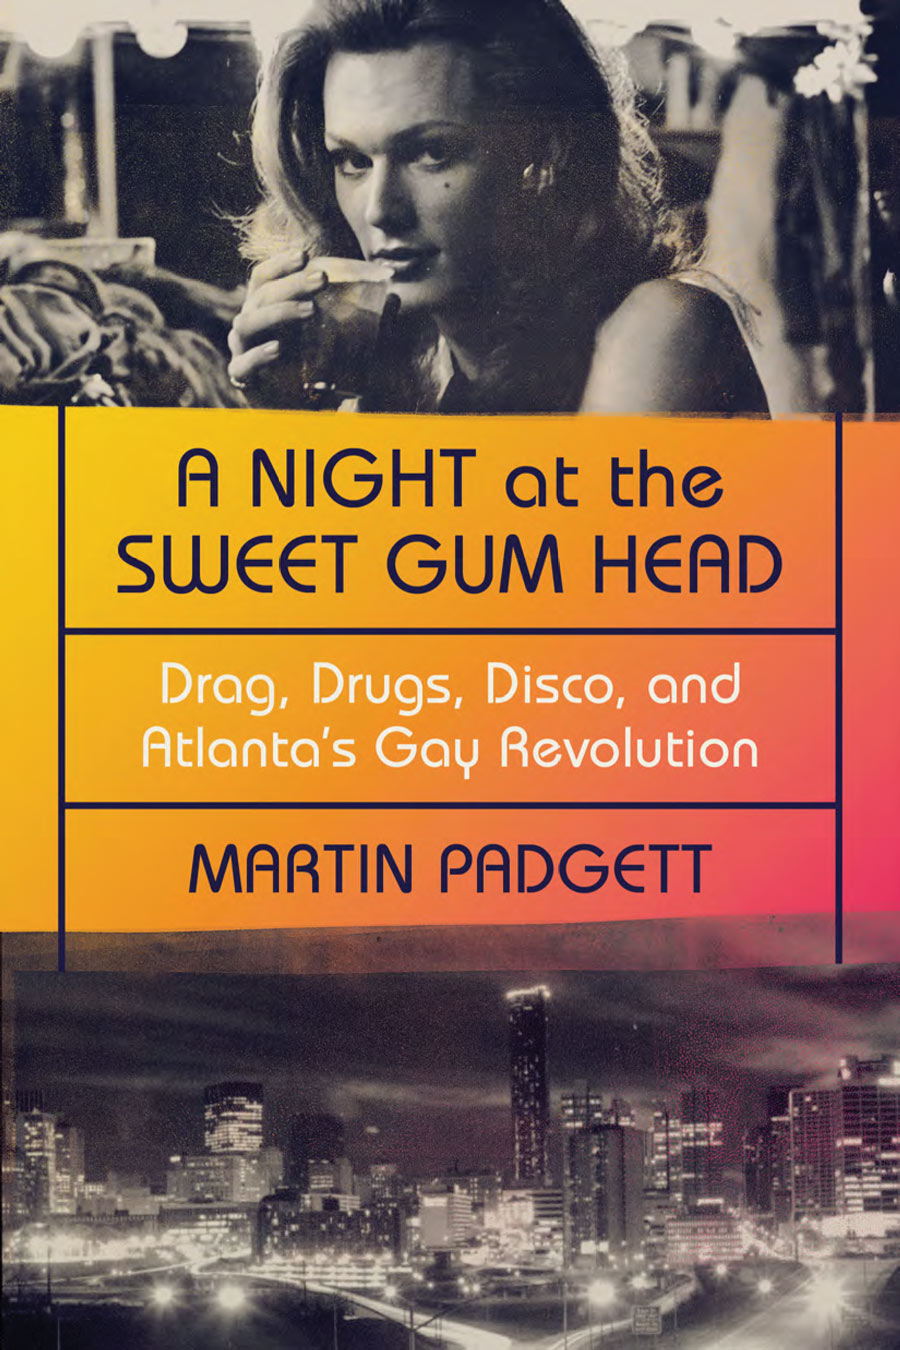 A Night at the Sweet Gum Head